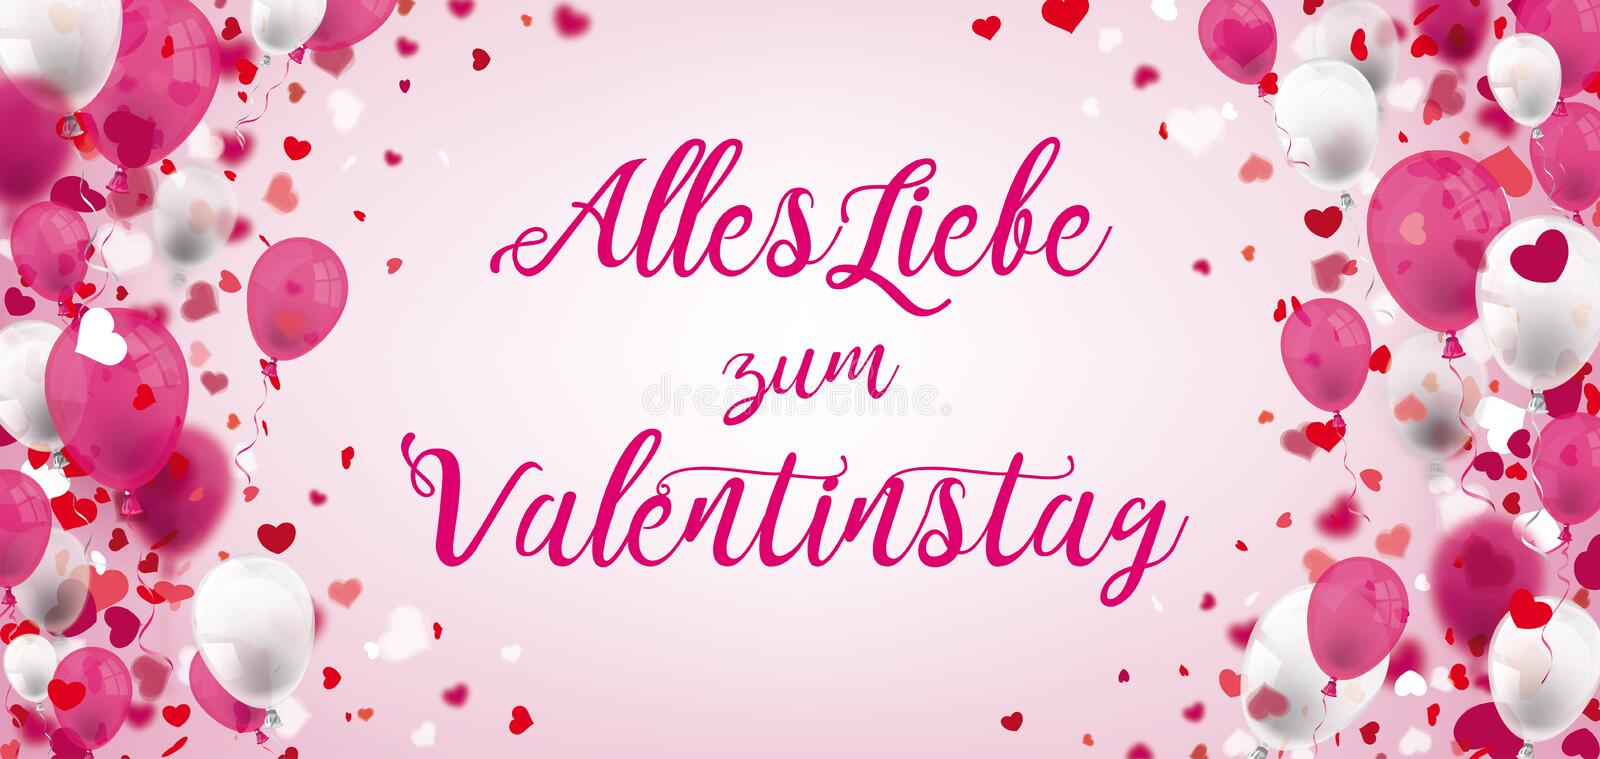 Pink White Balloons Hearts Valentinstag Header. German text Alles Liebe zum Valentinstag, translate Happy Valentines Day royalty free illustration